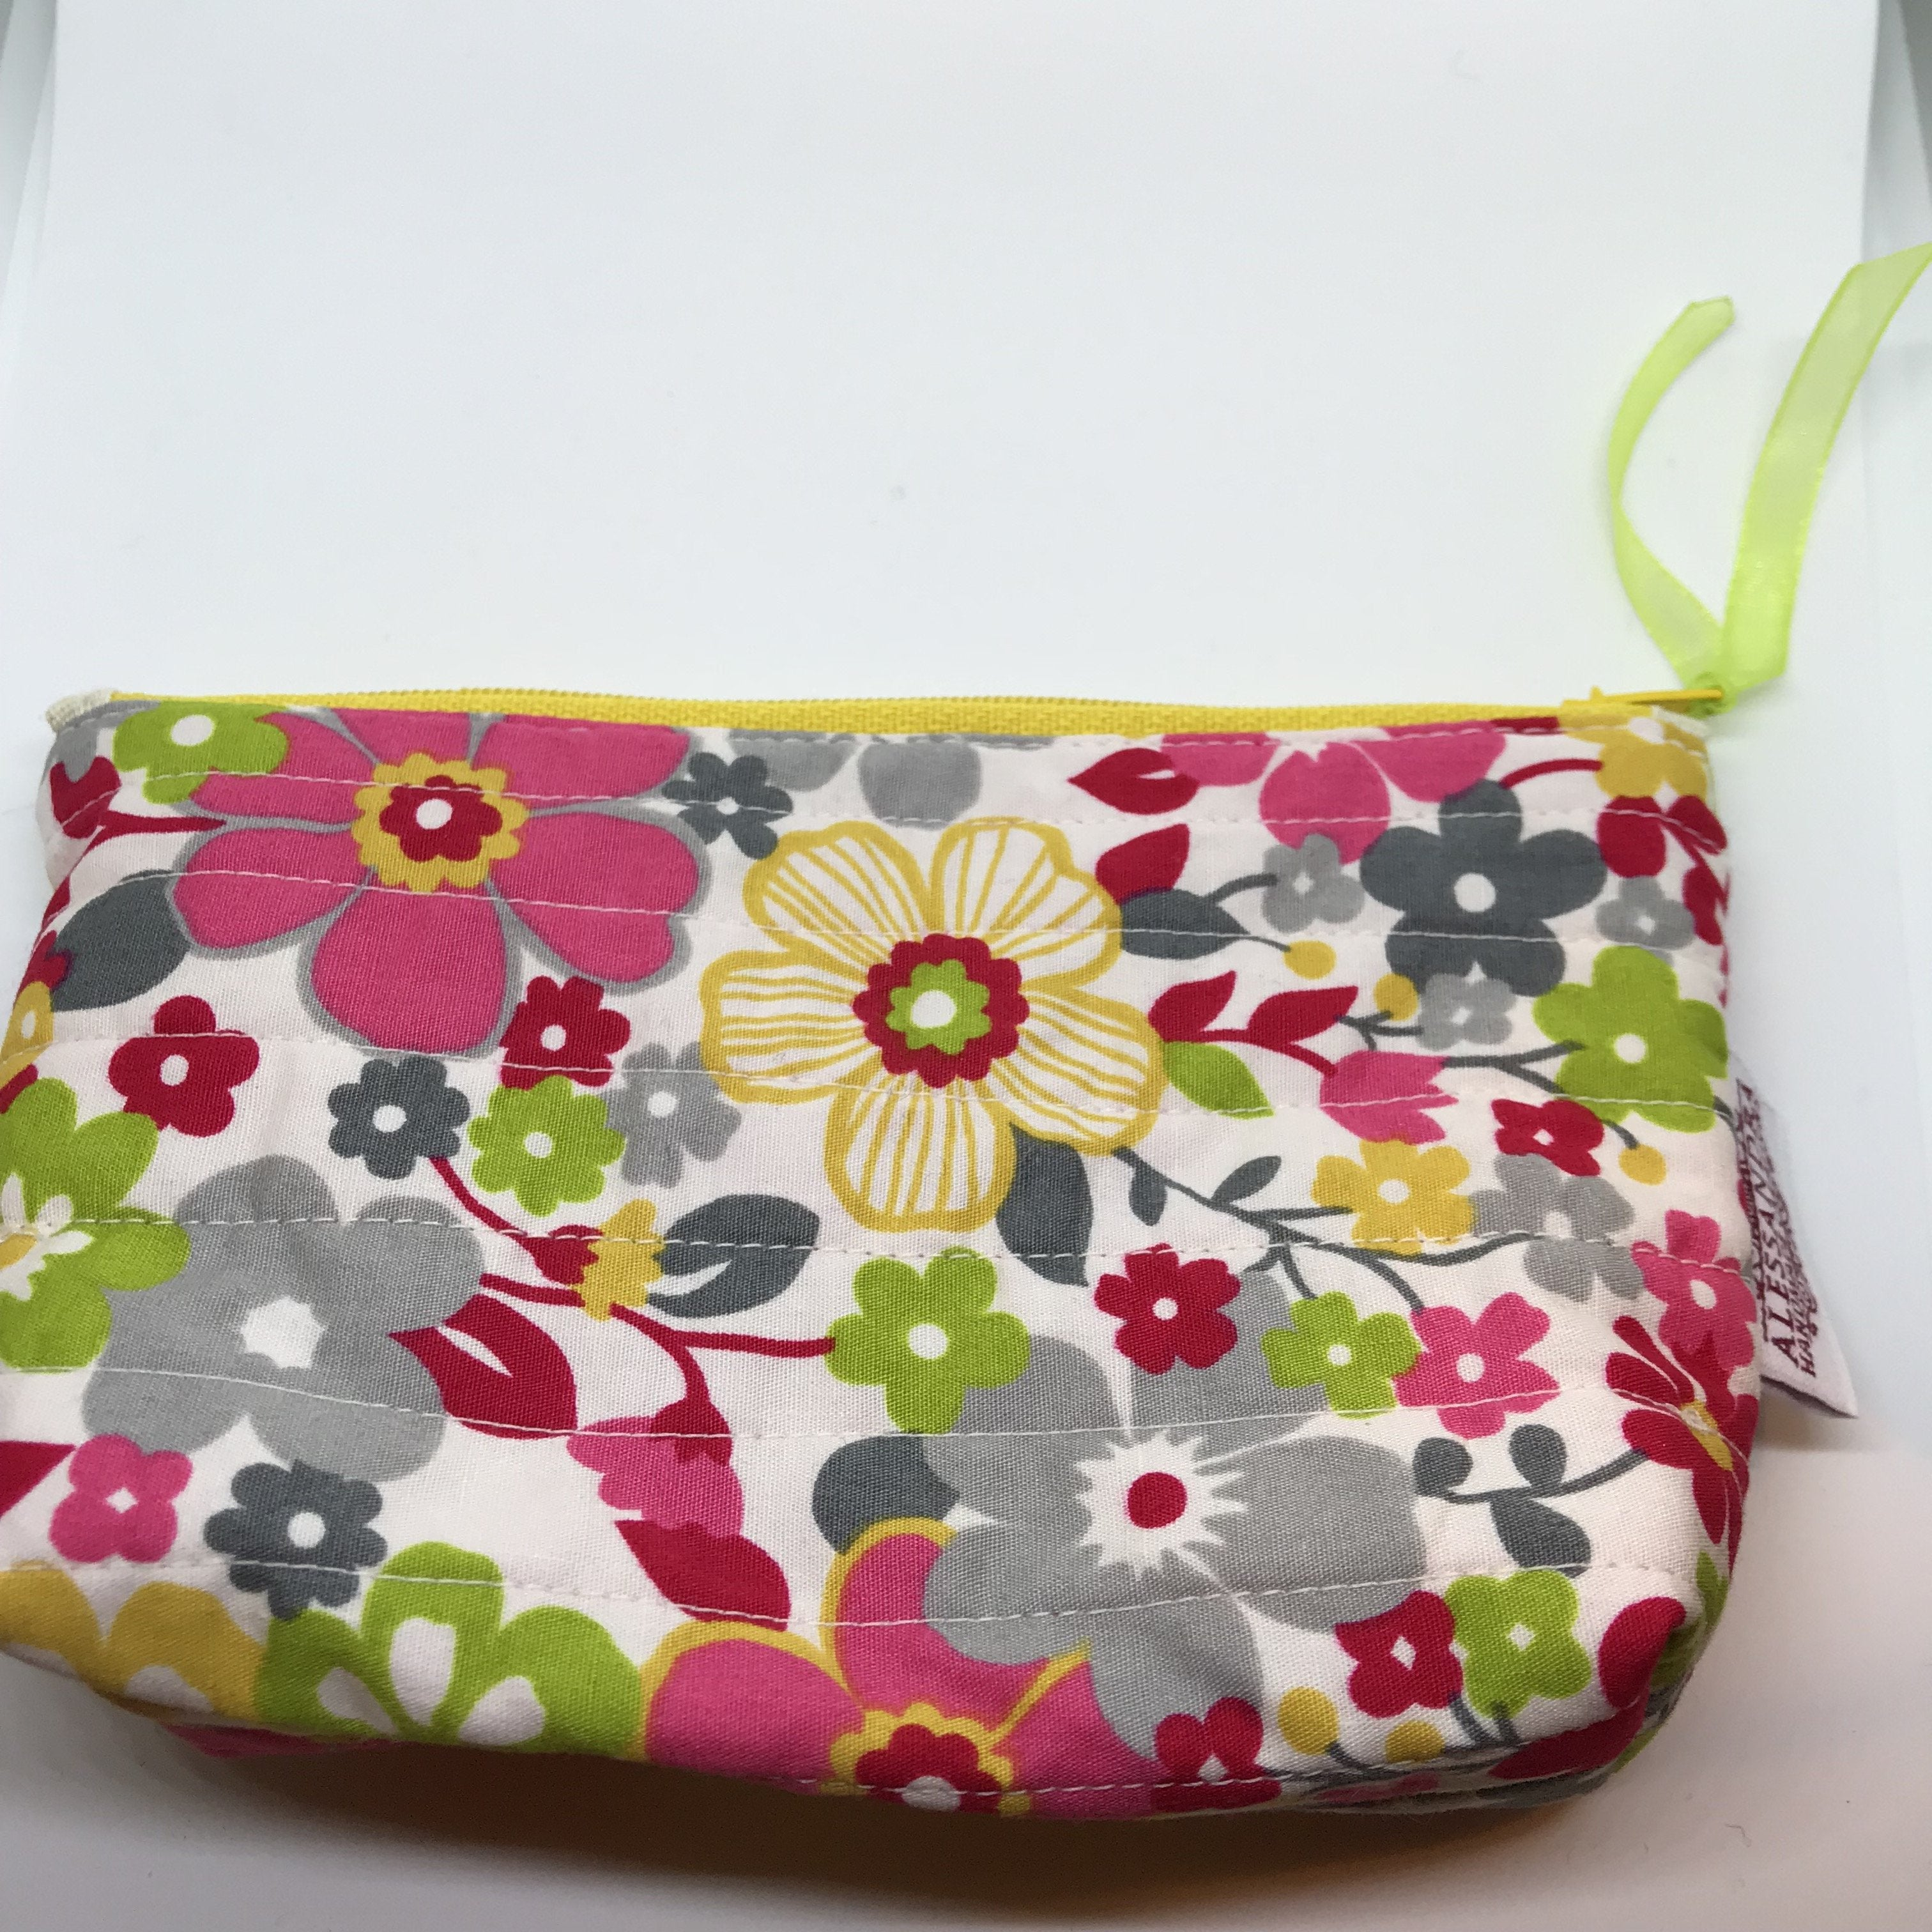 Full Bloom - Floral Pouches - Alessandra Handmade Creations